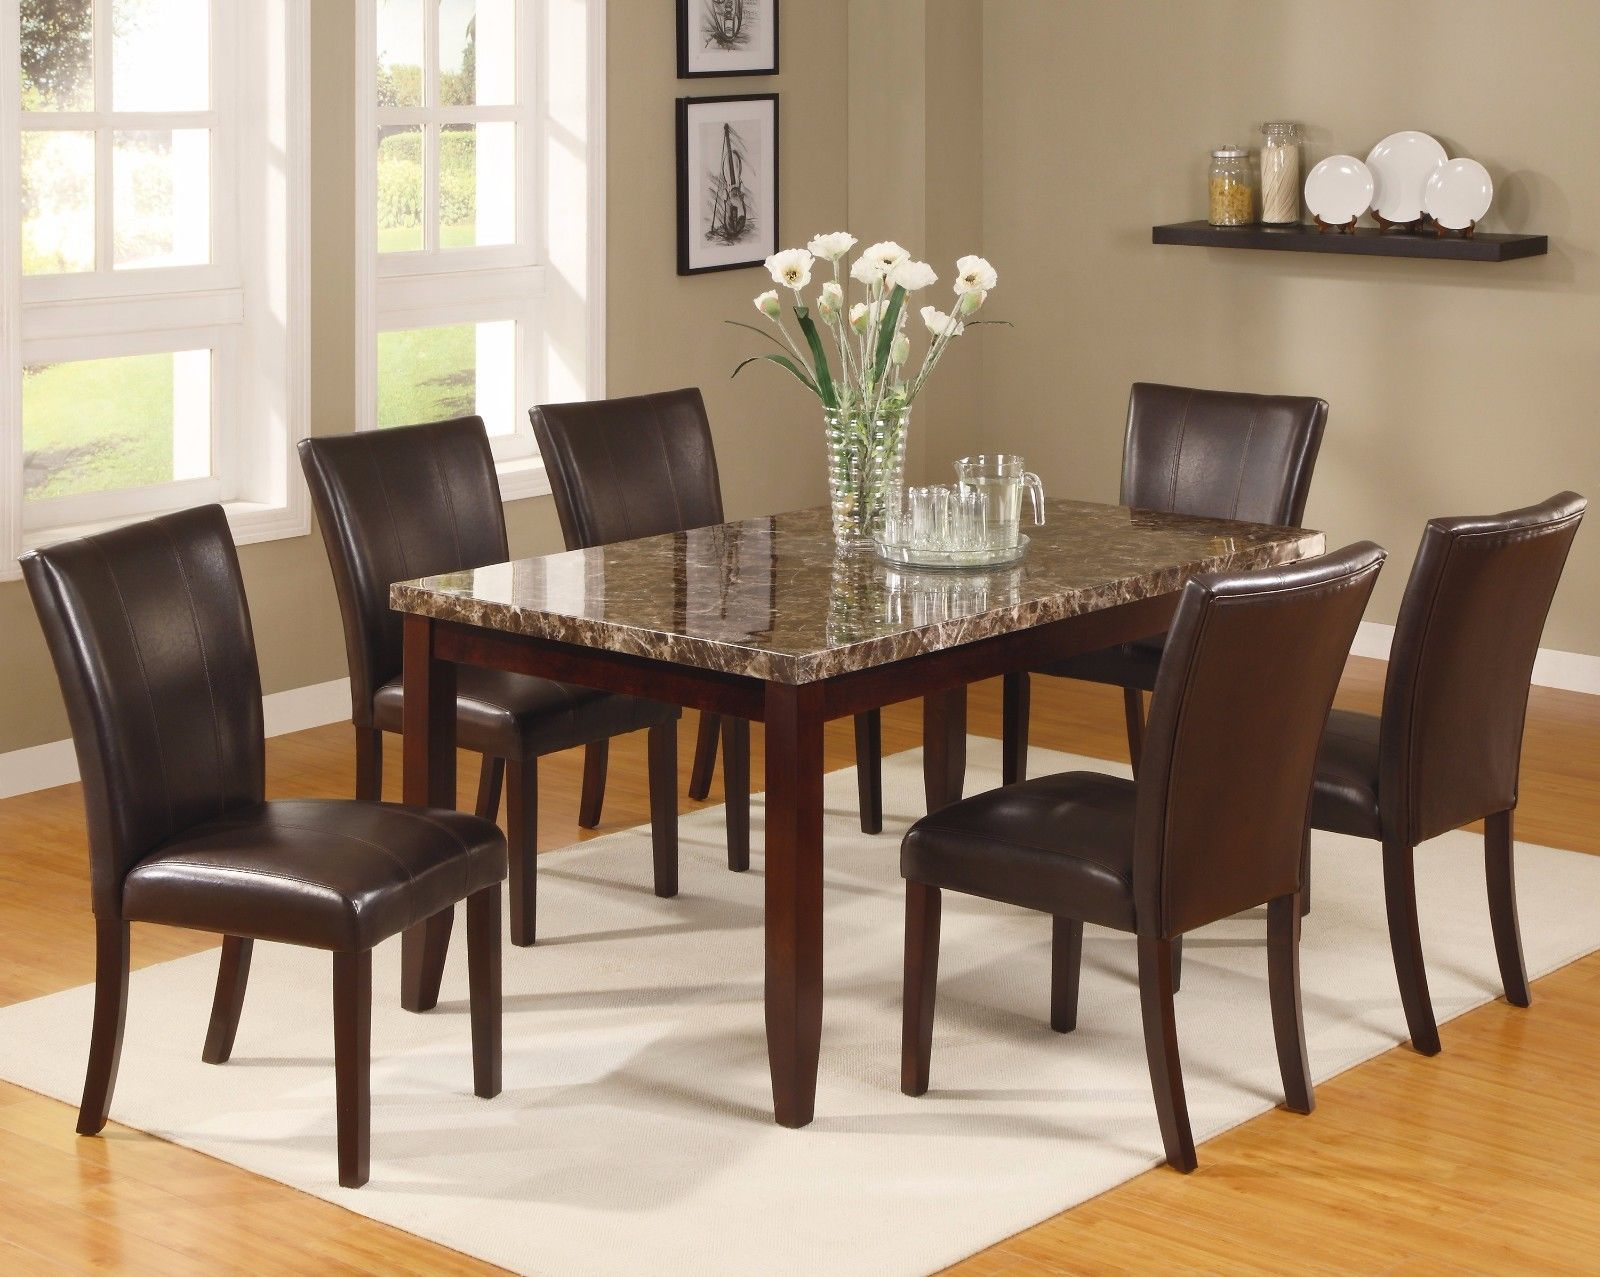 Crown Mark 2221 Dining Room Set 7pc. Ferrara Marble Veneer Top Chic Contemporary